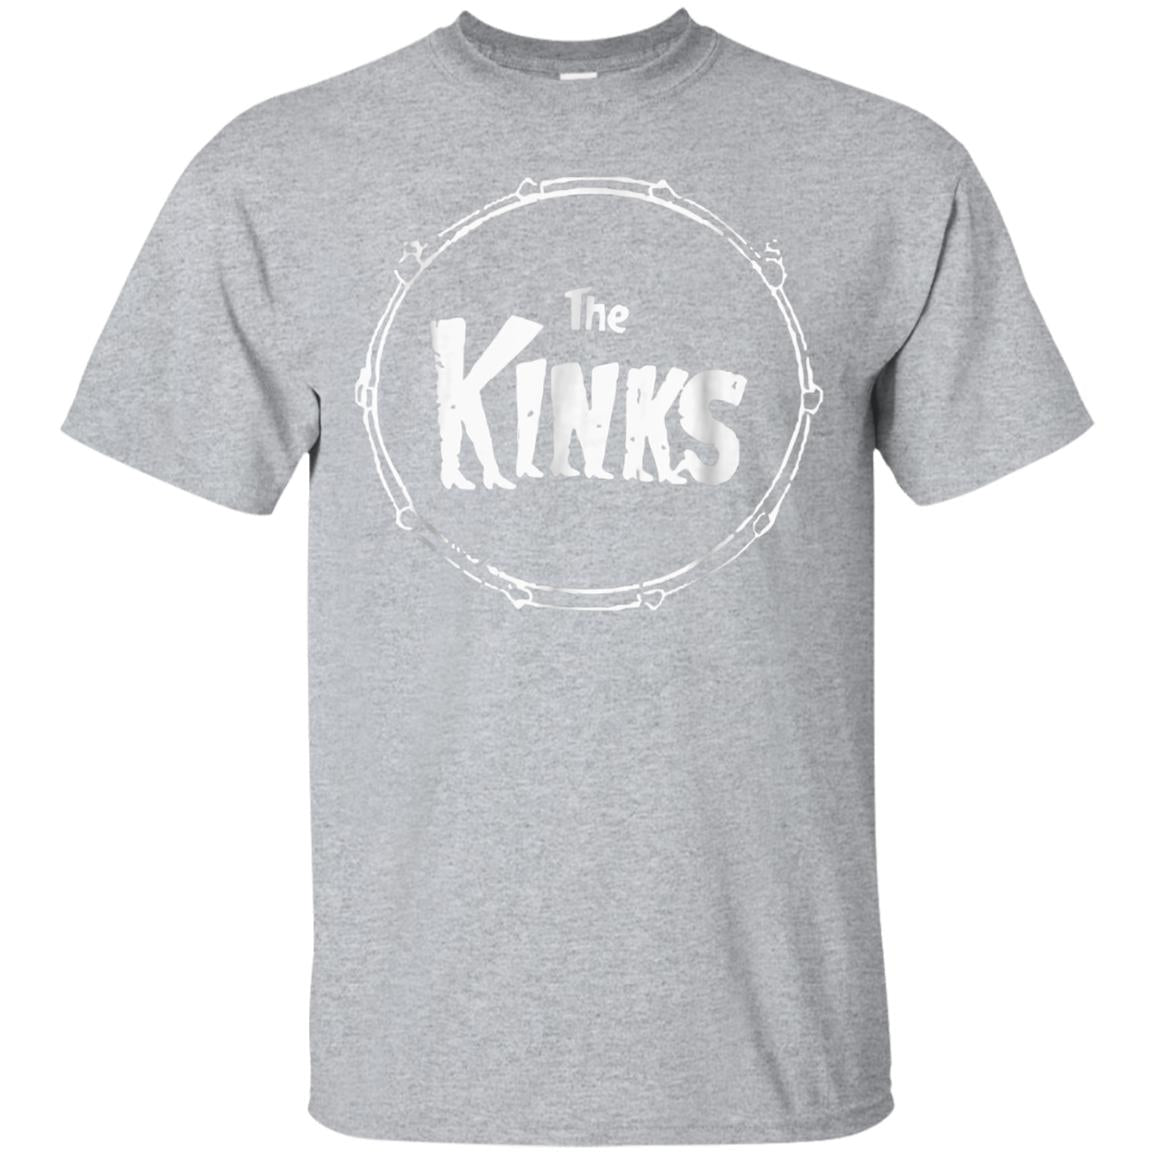 5460ad2a Awesome the kinks t shirt music band tshirt for men and women ...